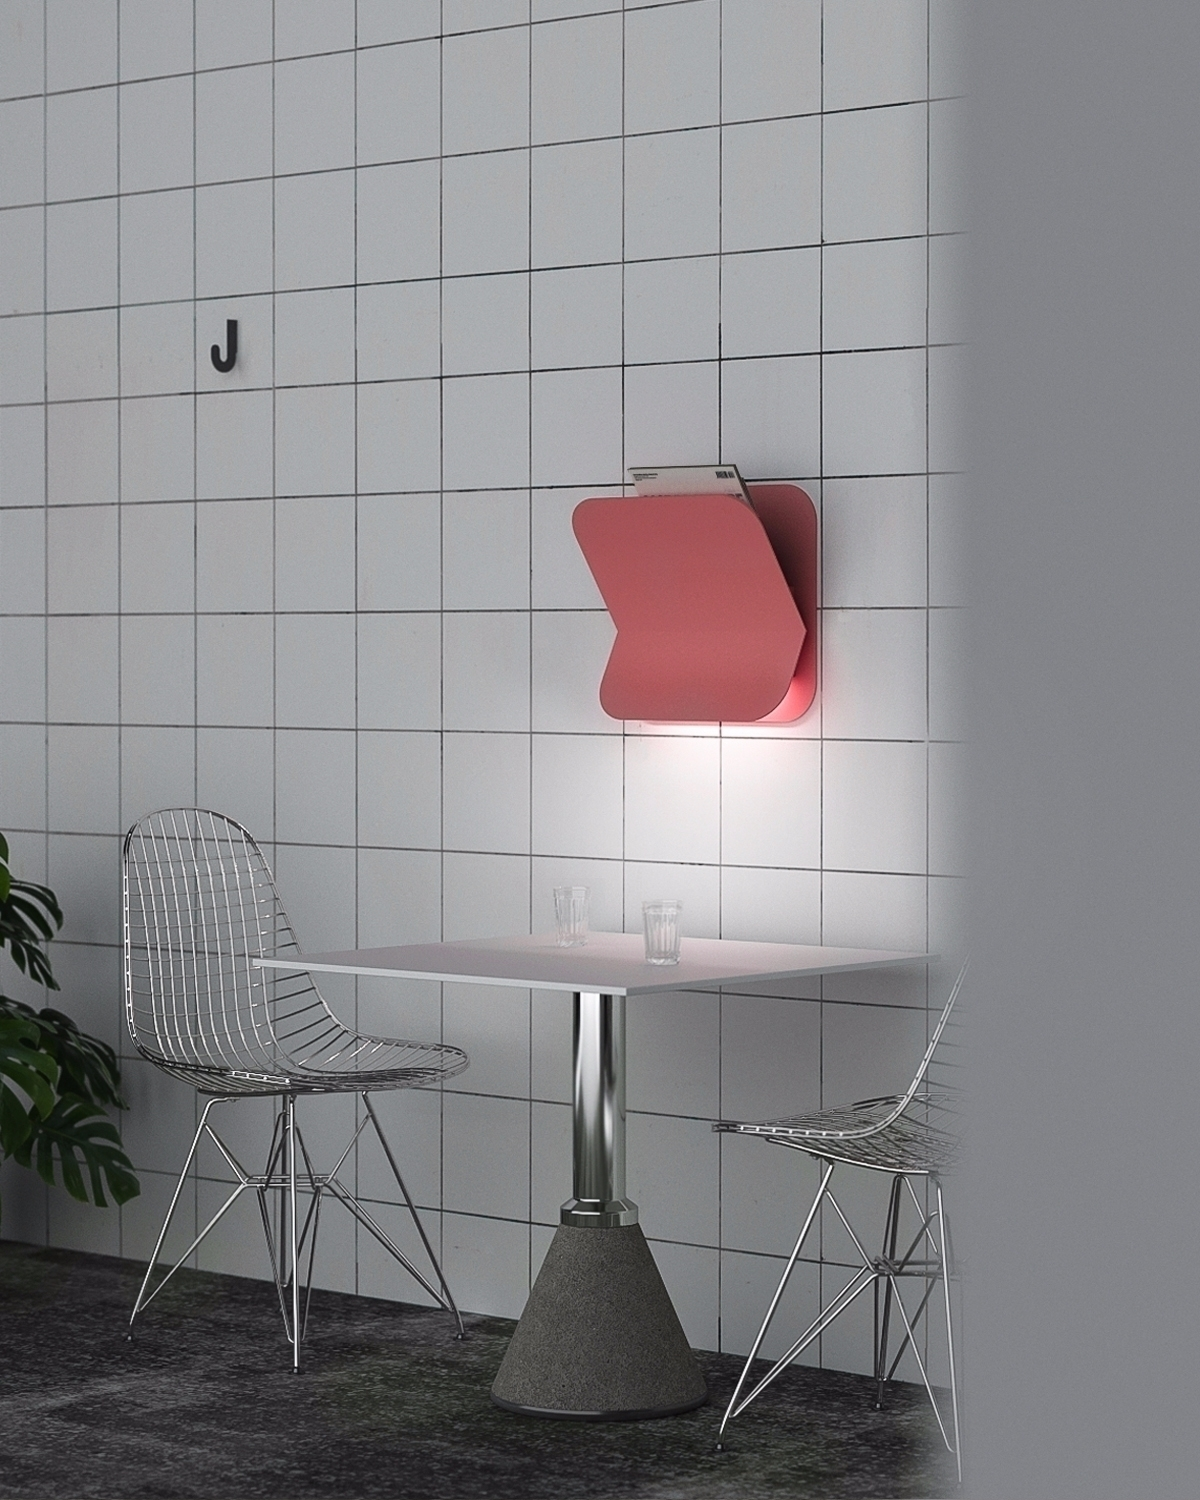 Asketik wall lamp shelf - asketik | ello